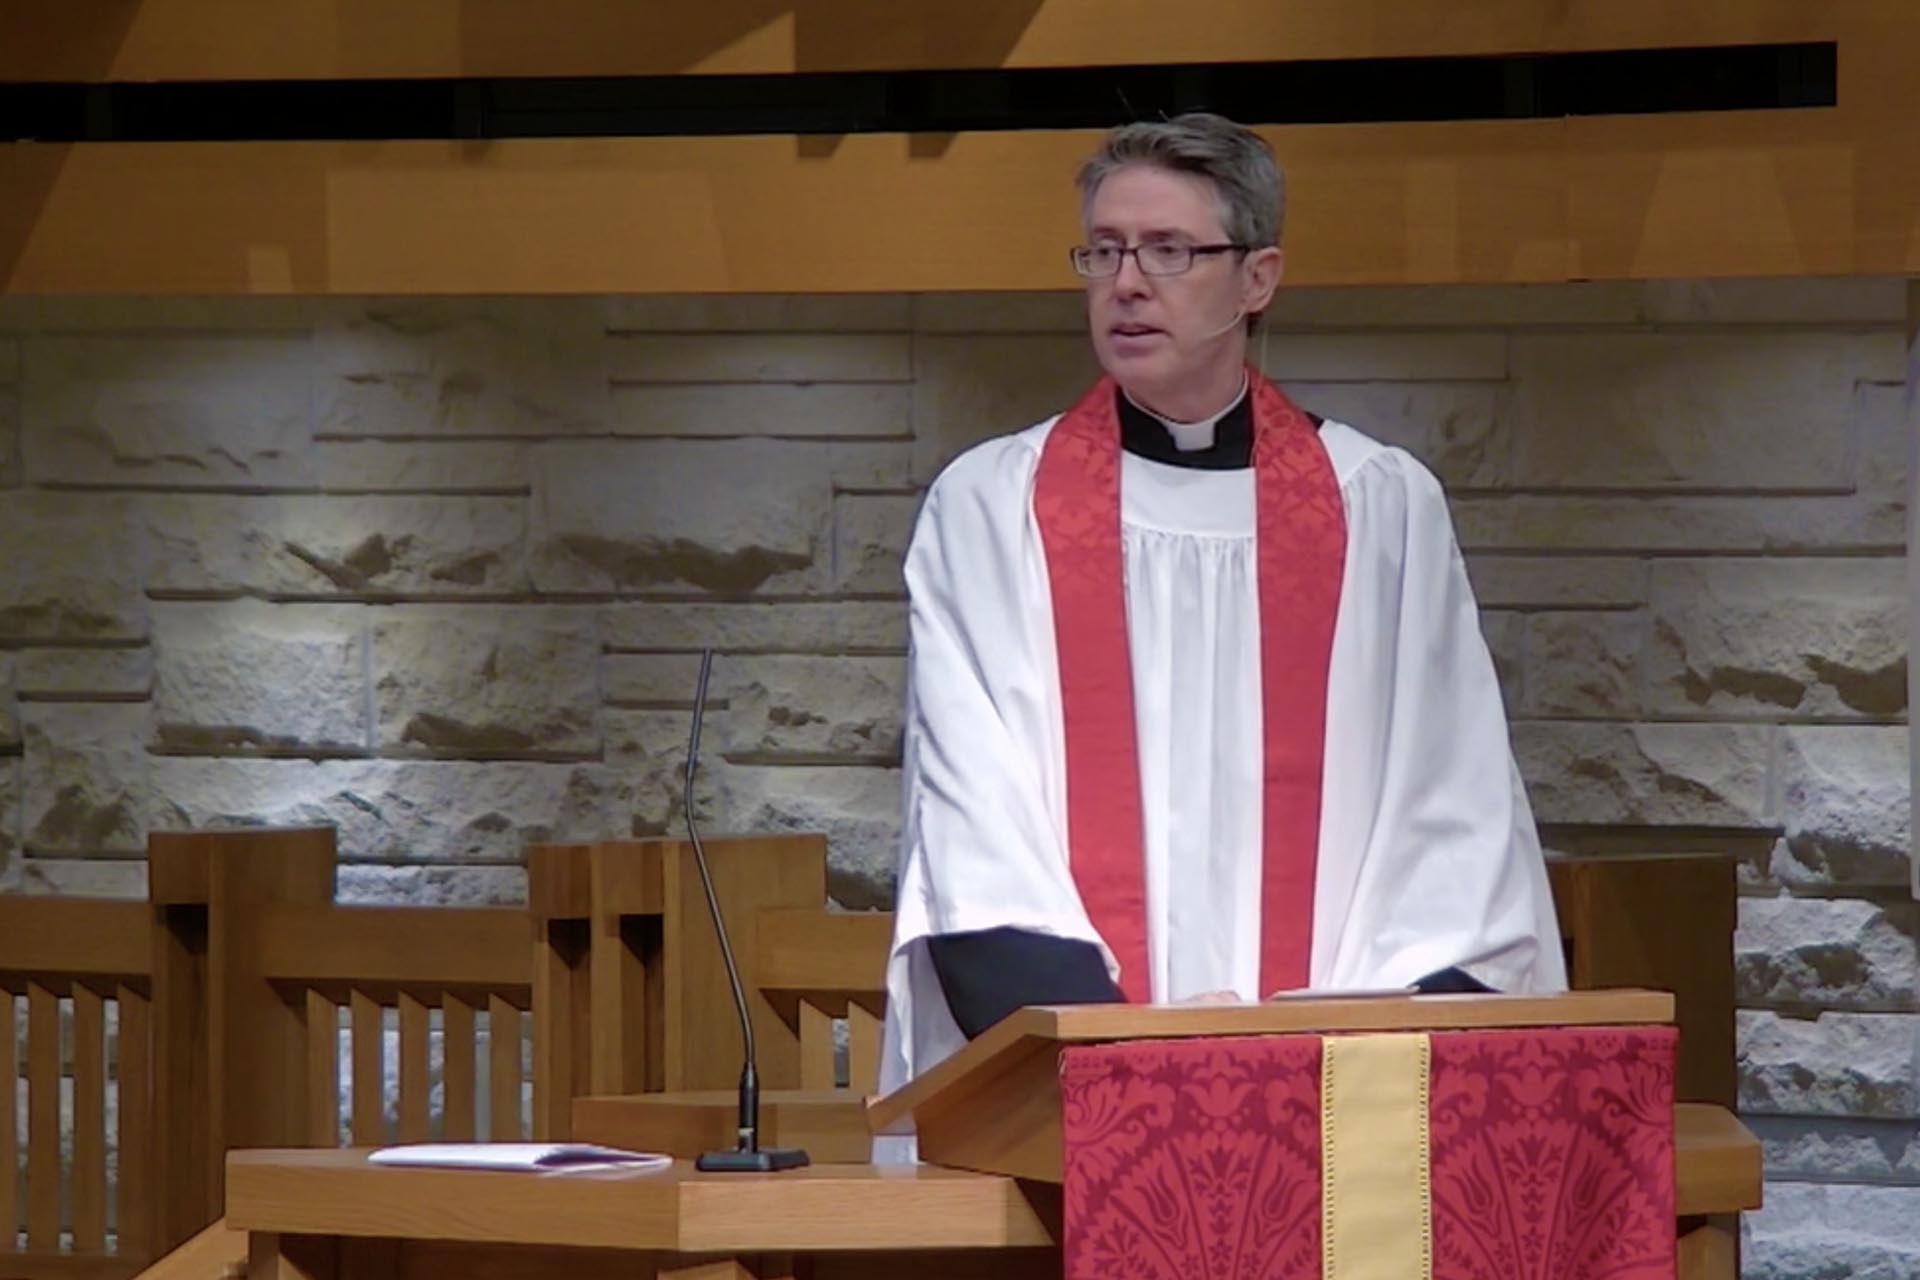 Big Deals, Paid Bills, Last Words - Sermon by the Rev. Matt Marino